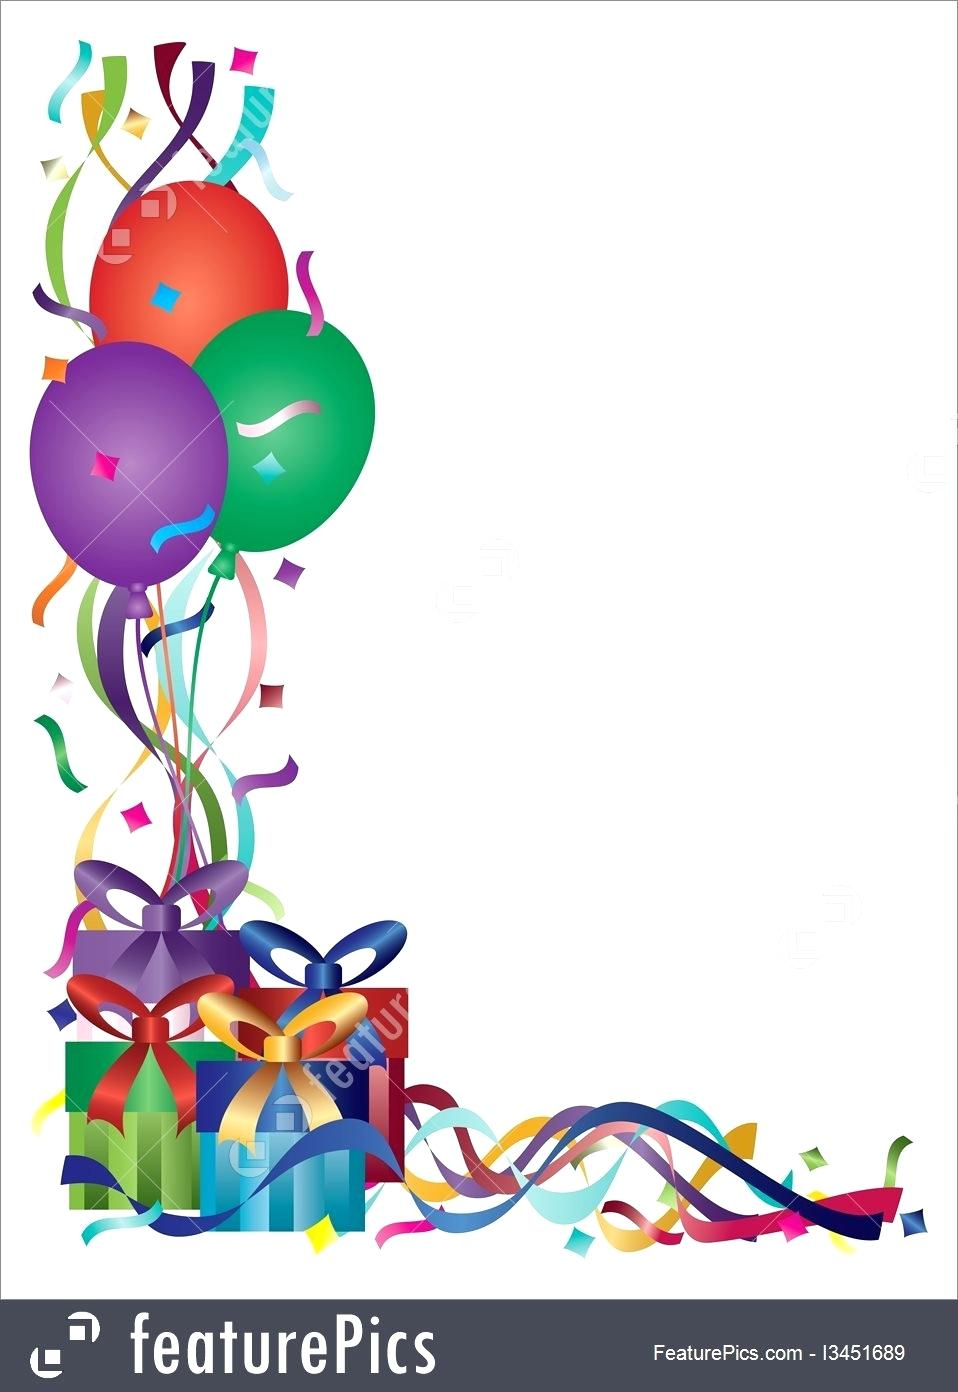 birthday border template free ; birthday-border-template-templates-presents-with-colorful-ribbons-and-confetti-background-illustration-party